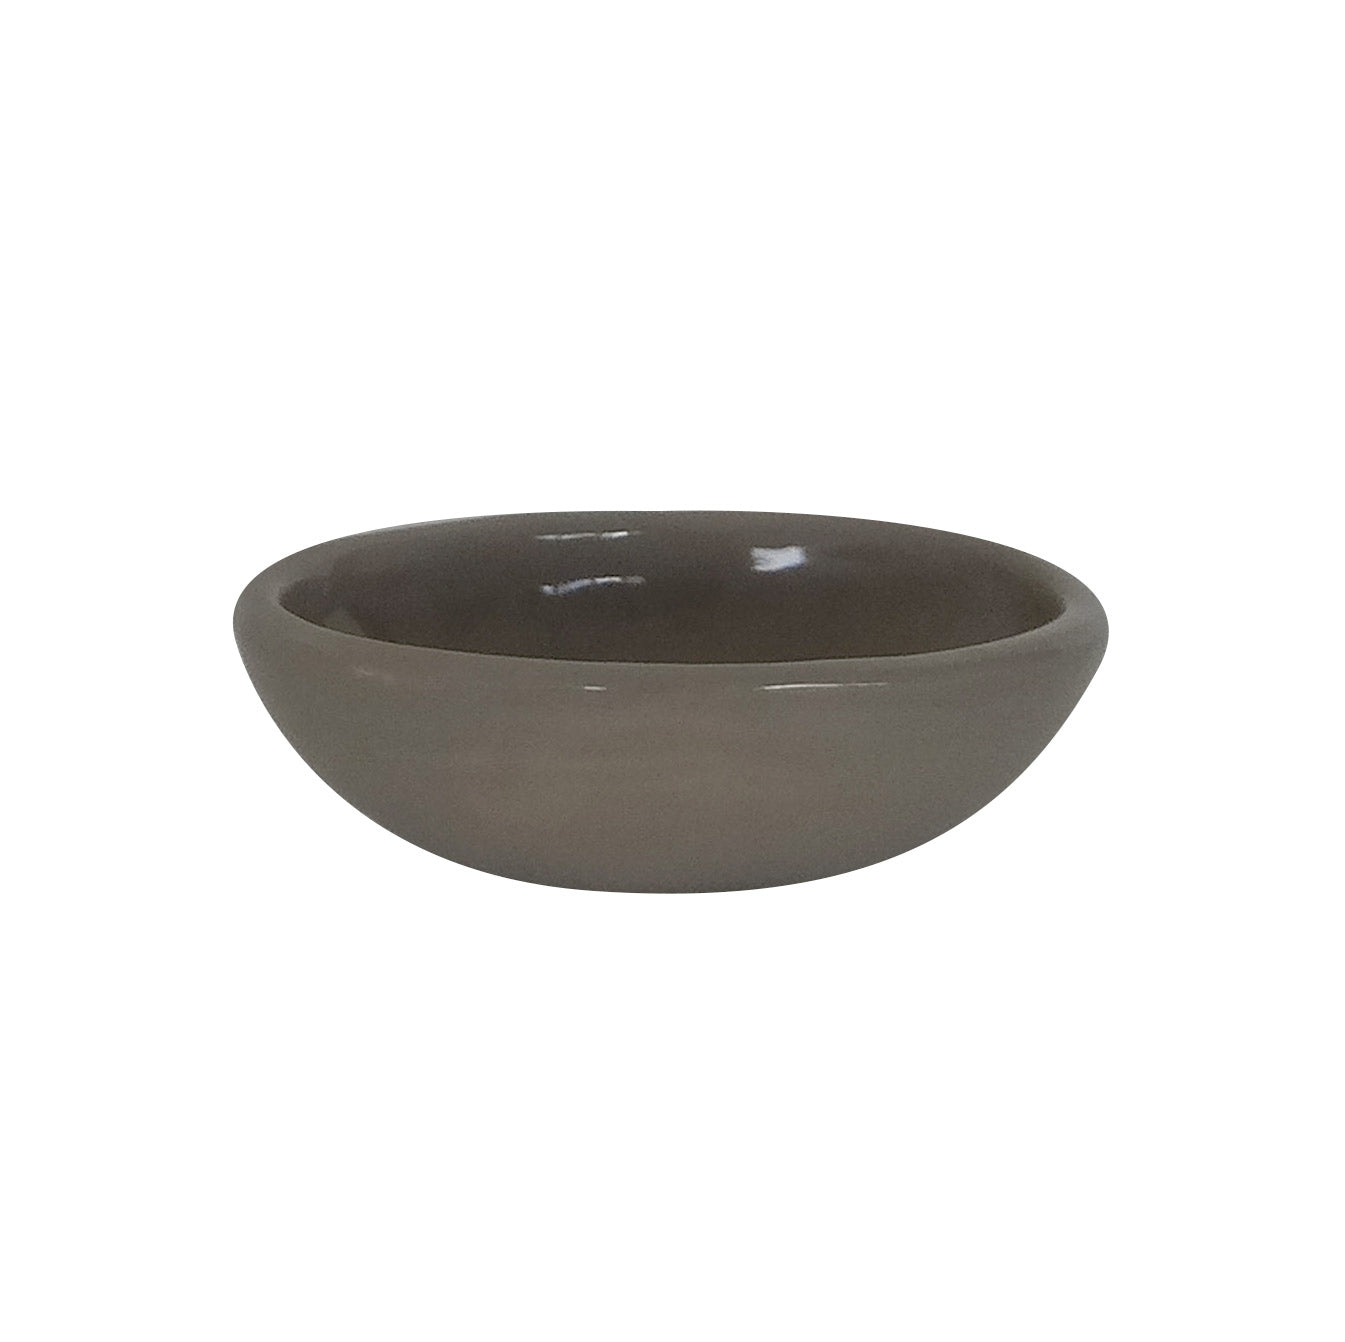 OVAL SPICE DISH TAUPE